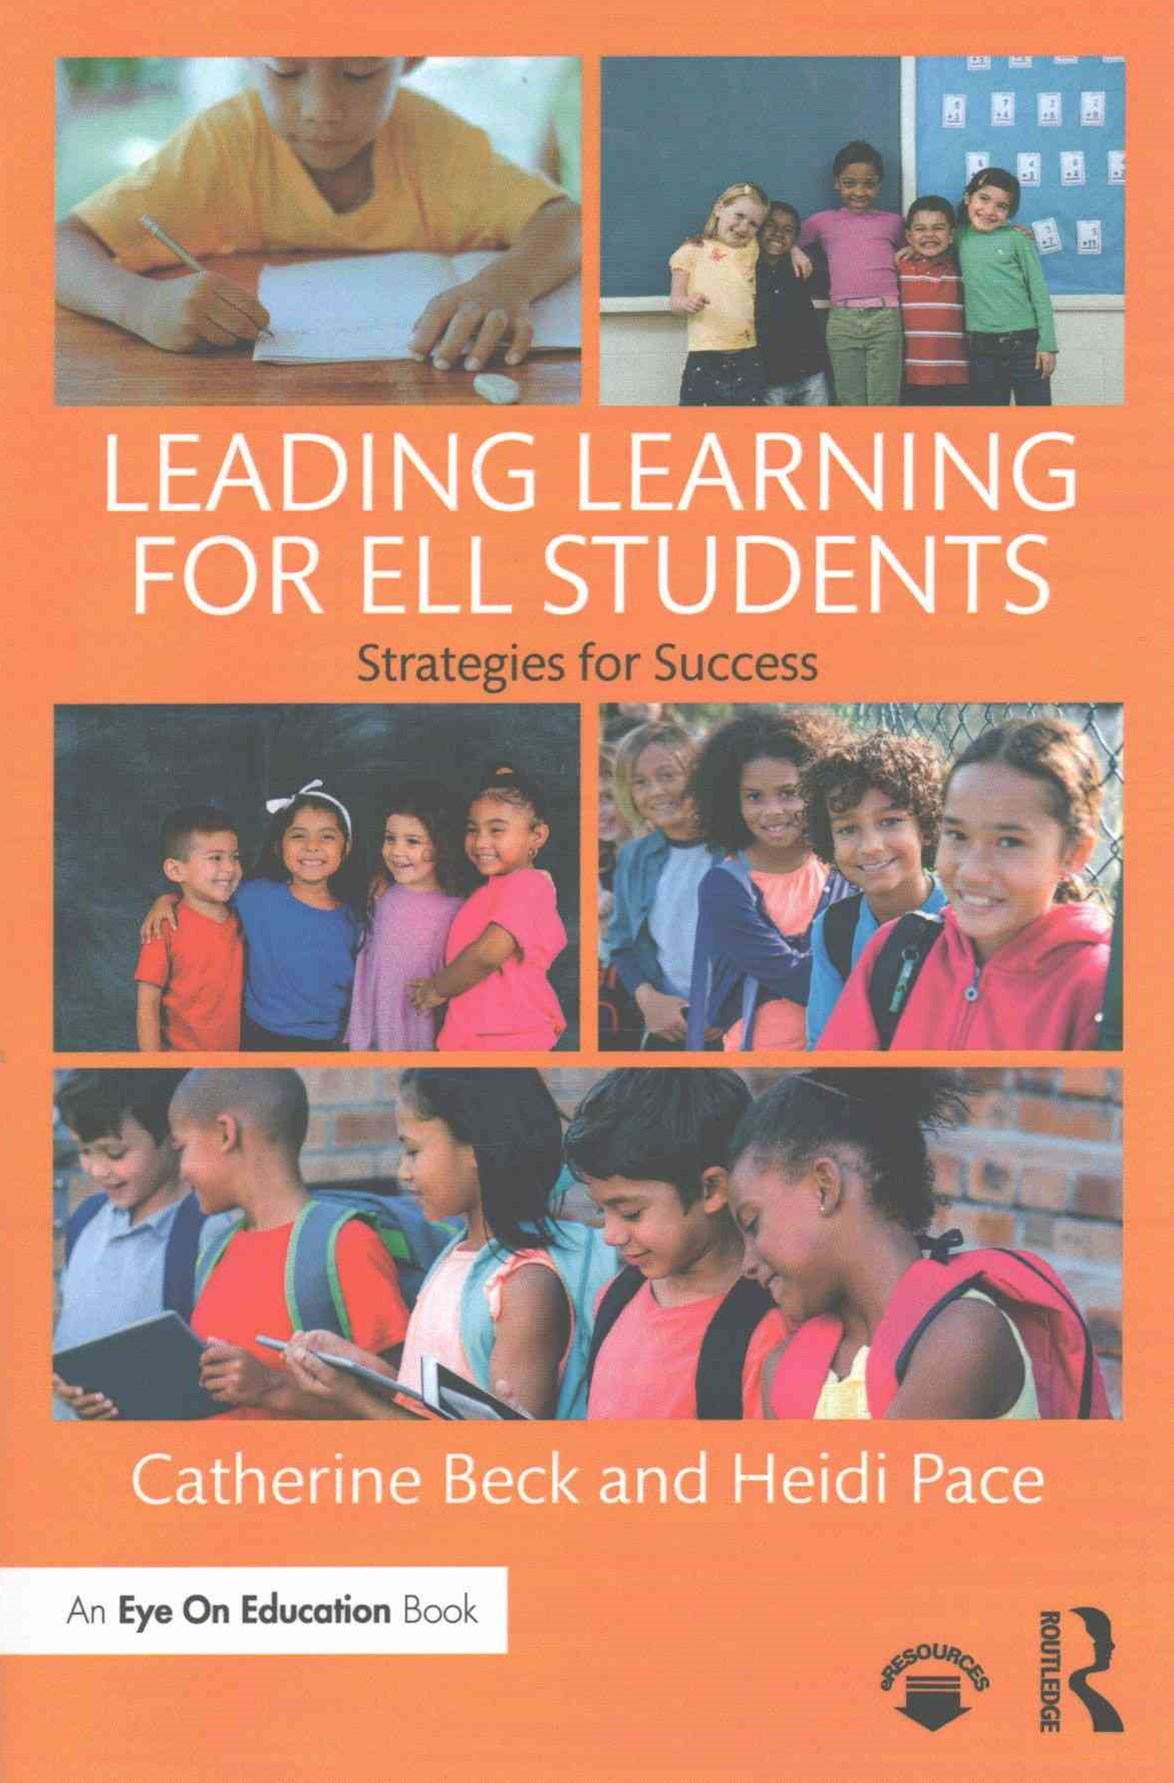 Leading Learning for Ell Students